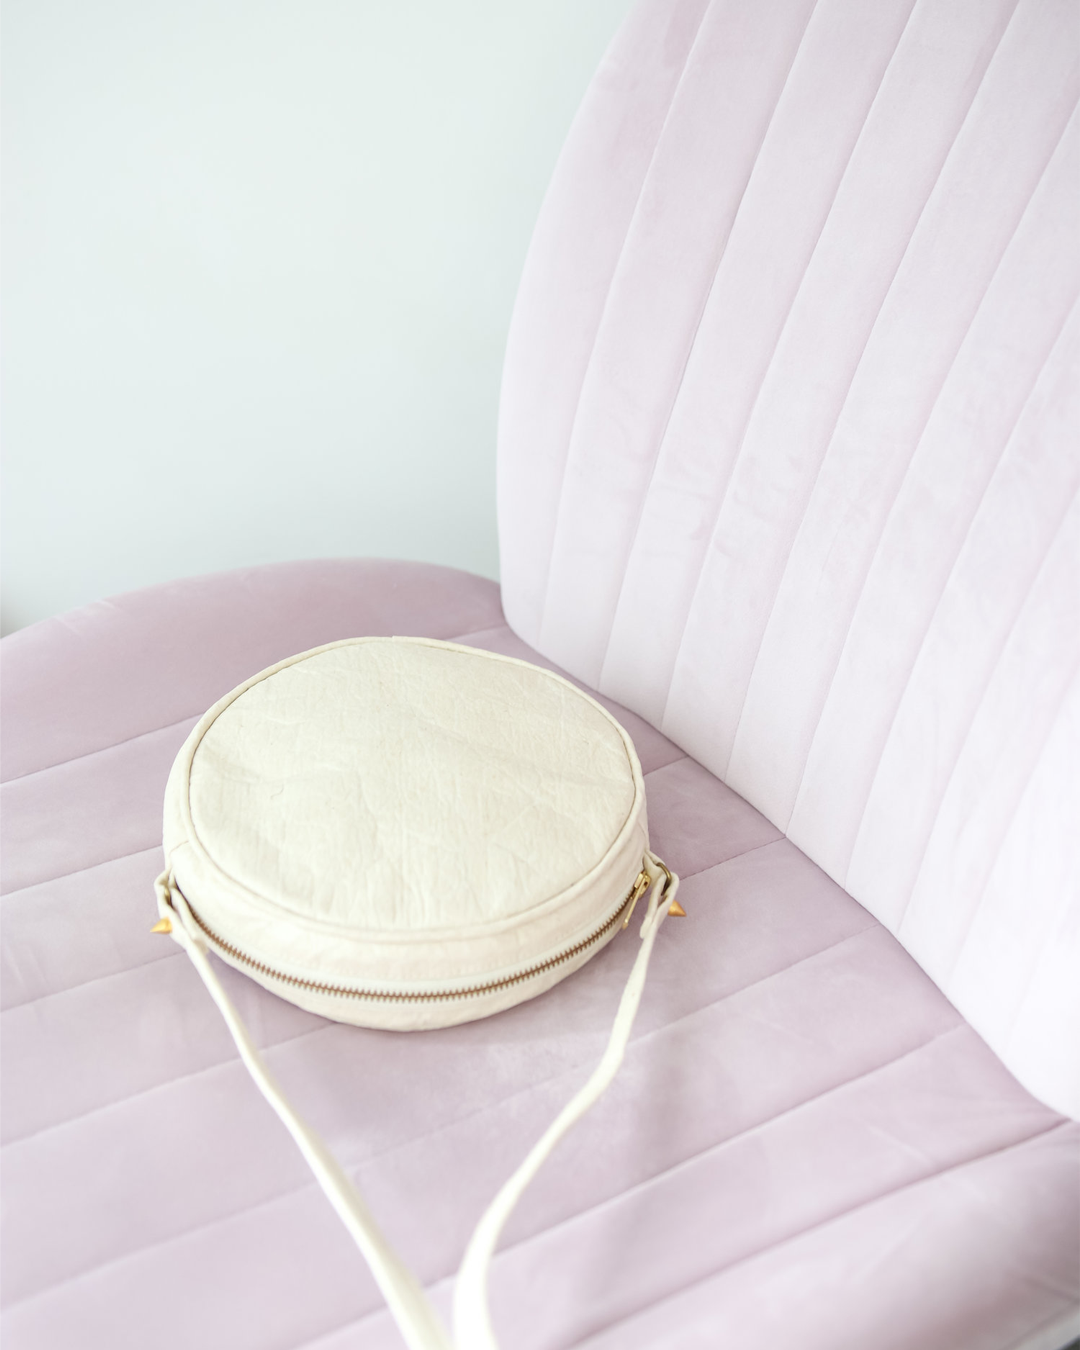 A lilac velvet chair with a white circular handbag lying on it